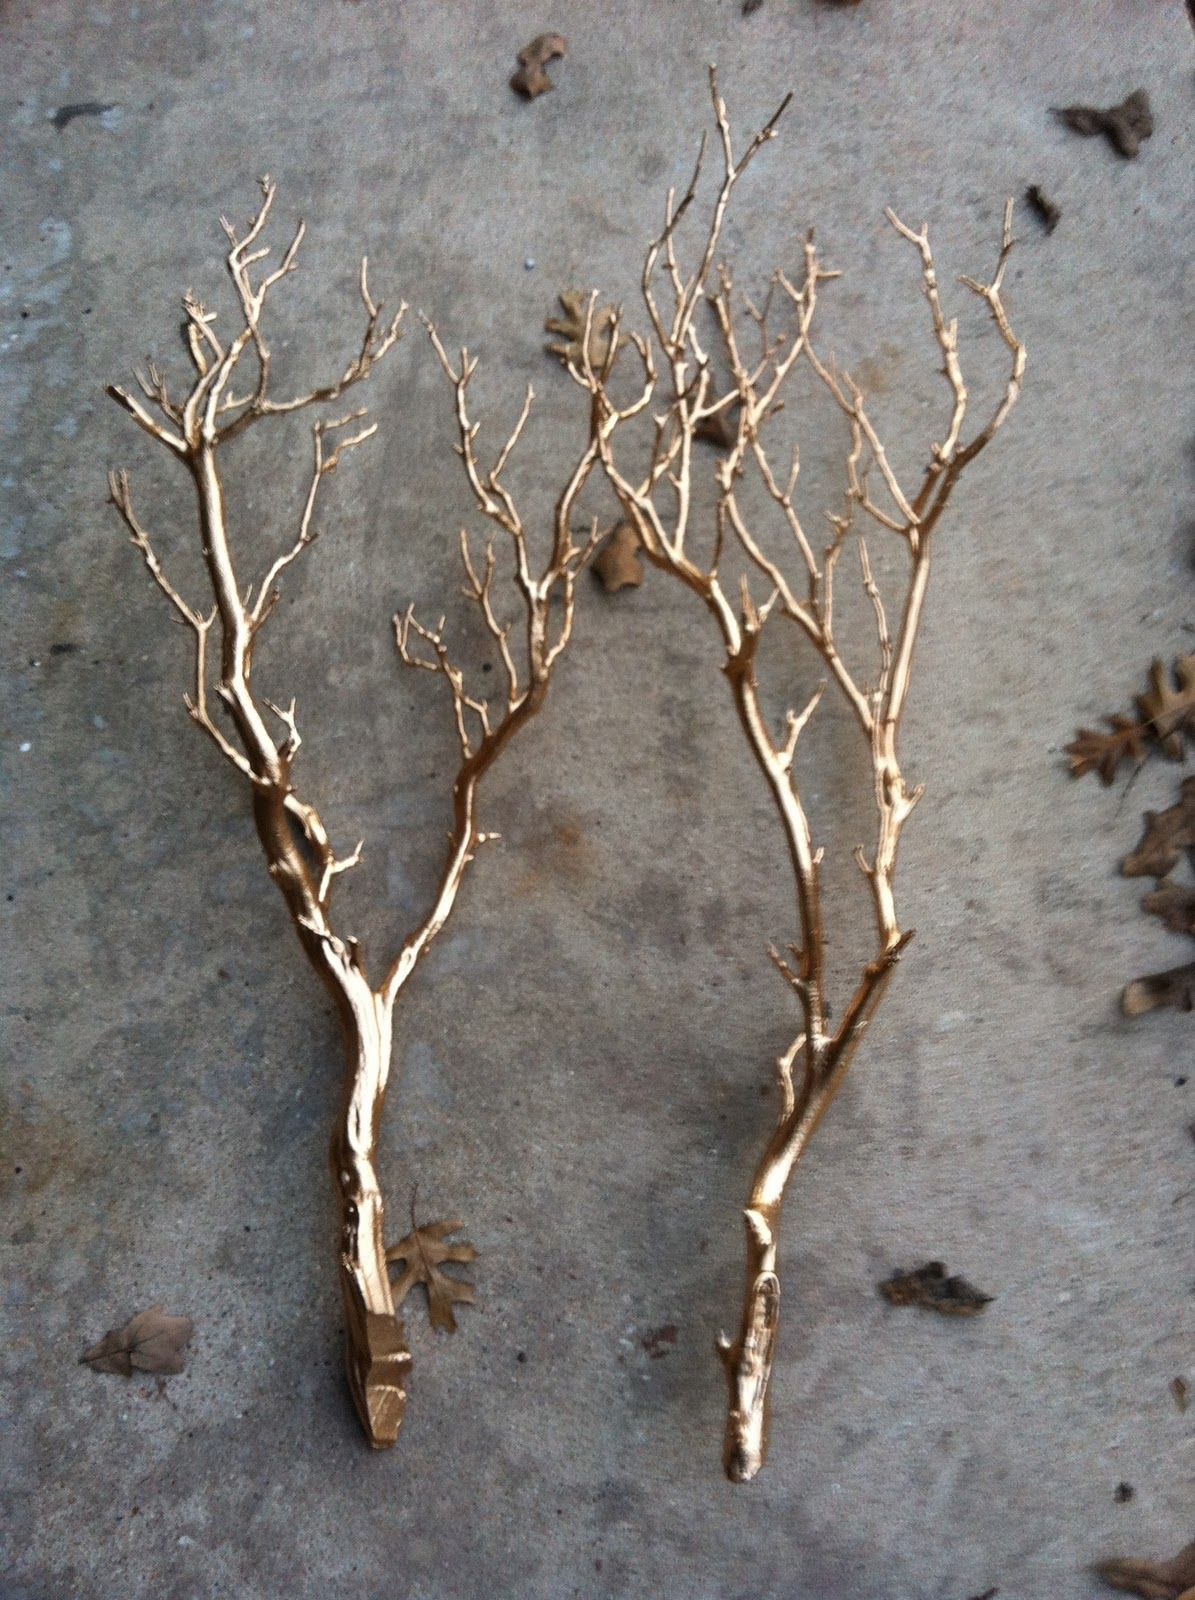 Spray Paint Tree Branches In Silver Or Gold And Set In Vases For Centerpieces Or Simple Decor Gold Diy Gold Spray Paint Spray Paint Cans